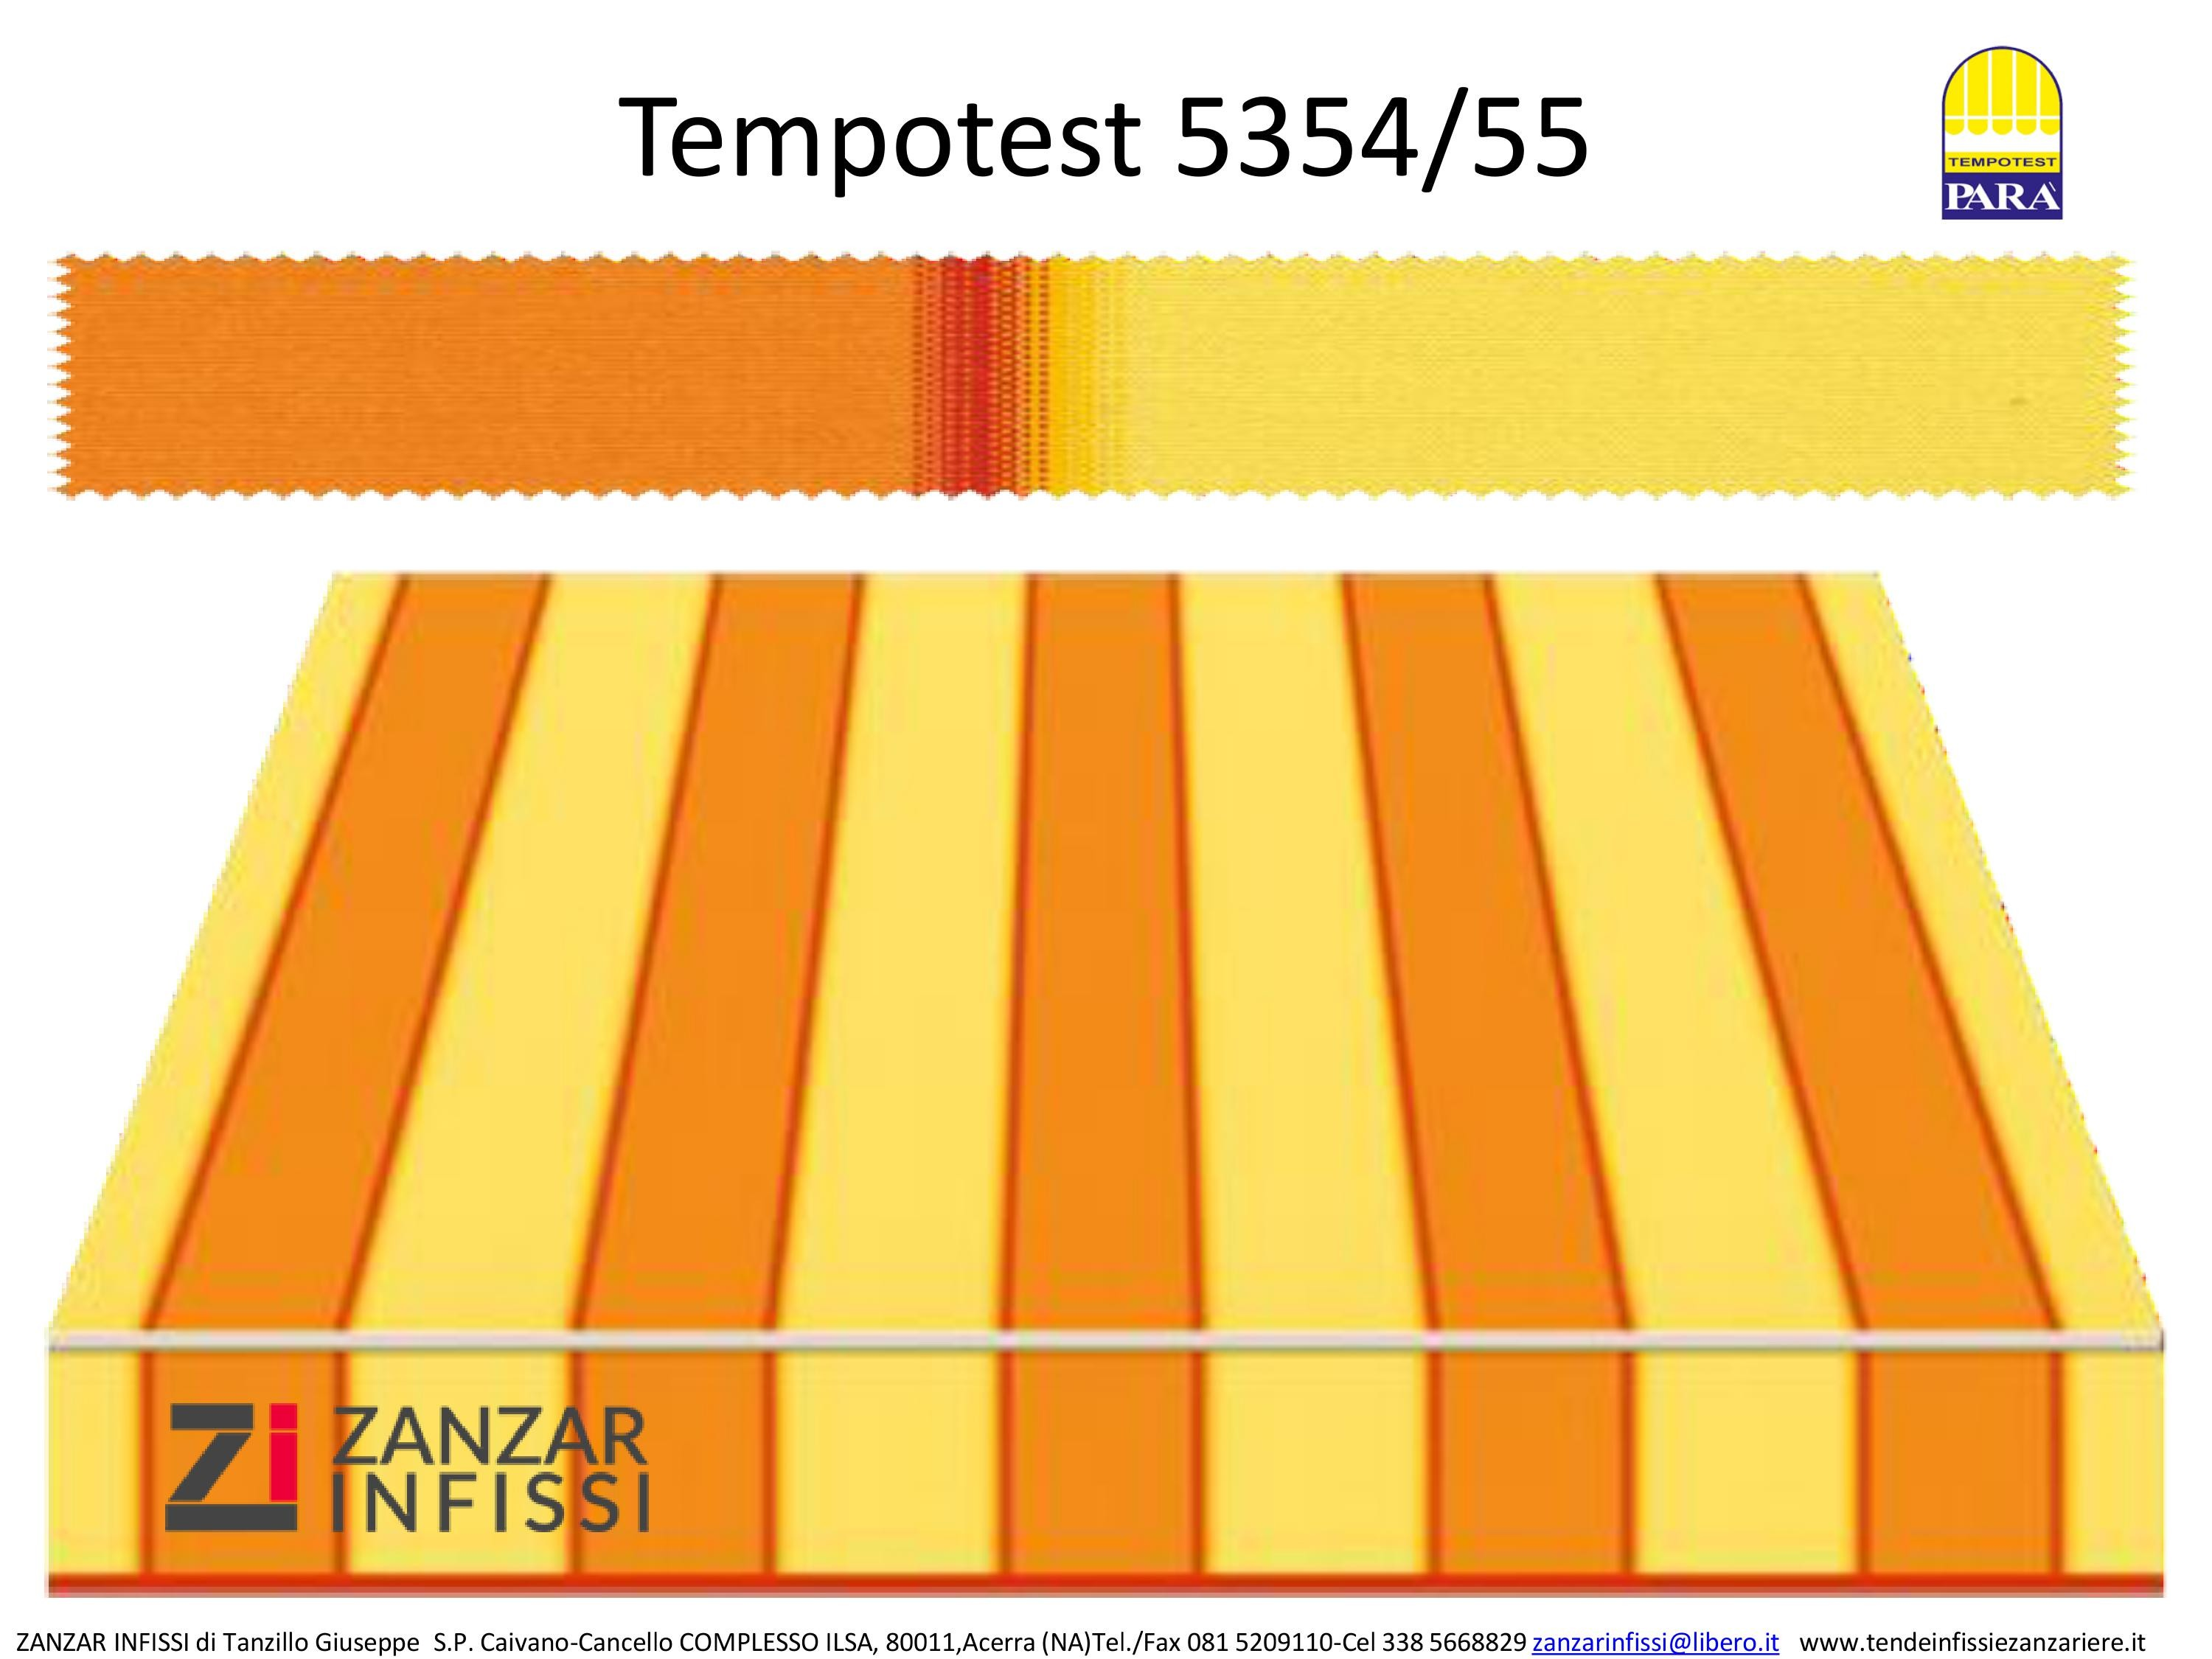 Tempotest 5355/54